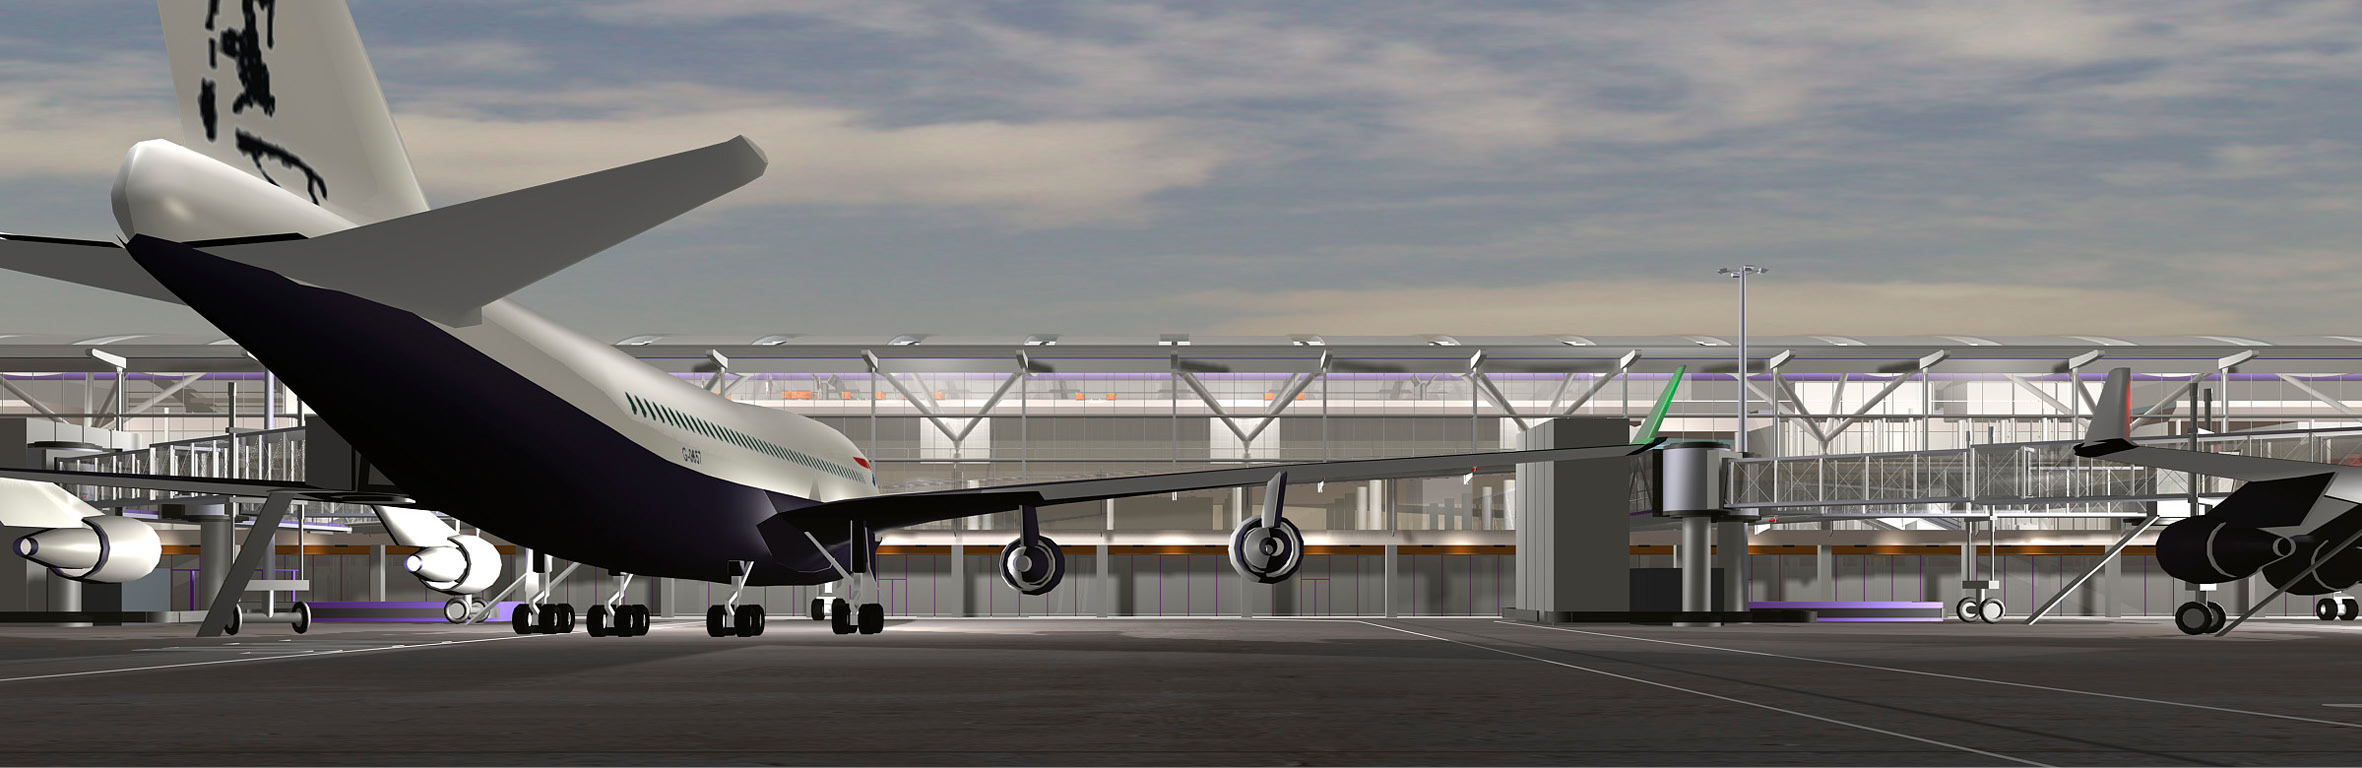 CGI of the aircraft stands for one of the Terminal 5 satallitle terminals.